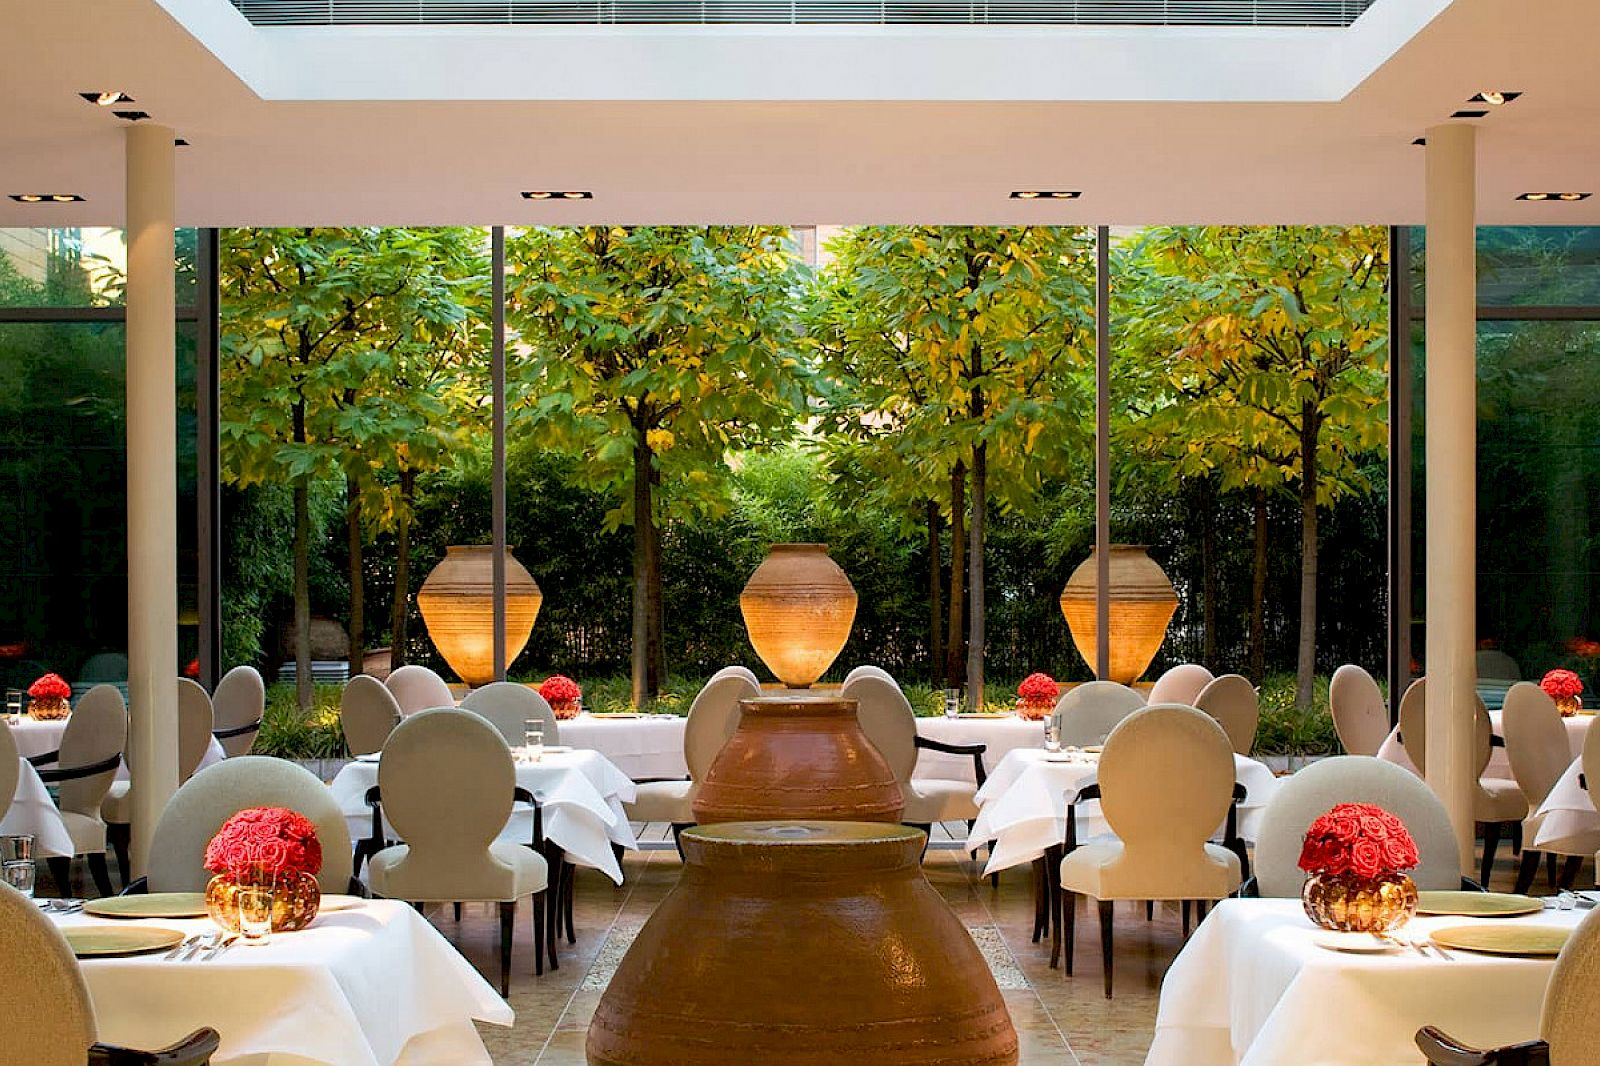 Due to the planting of bamboo all around the 2-star restaurant FACIL, you are far from the hecticness of the capital